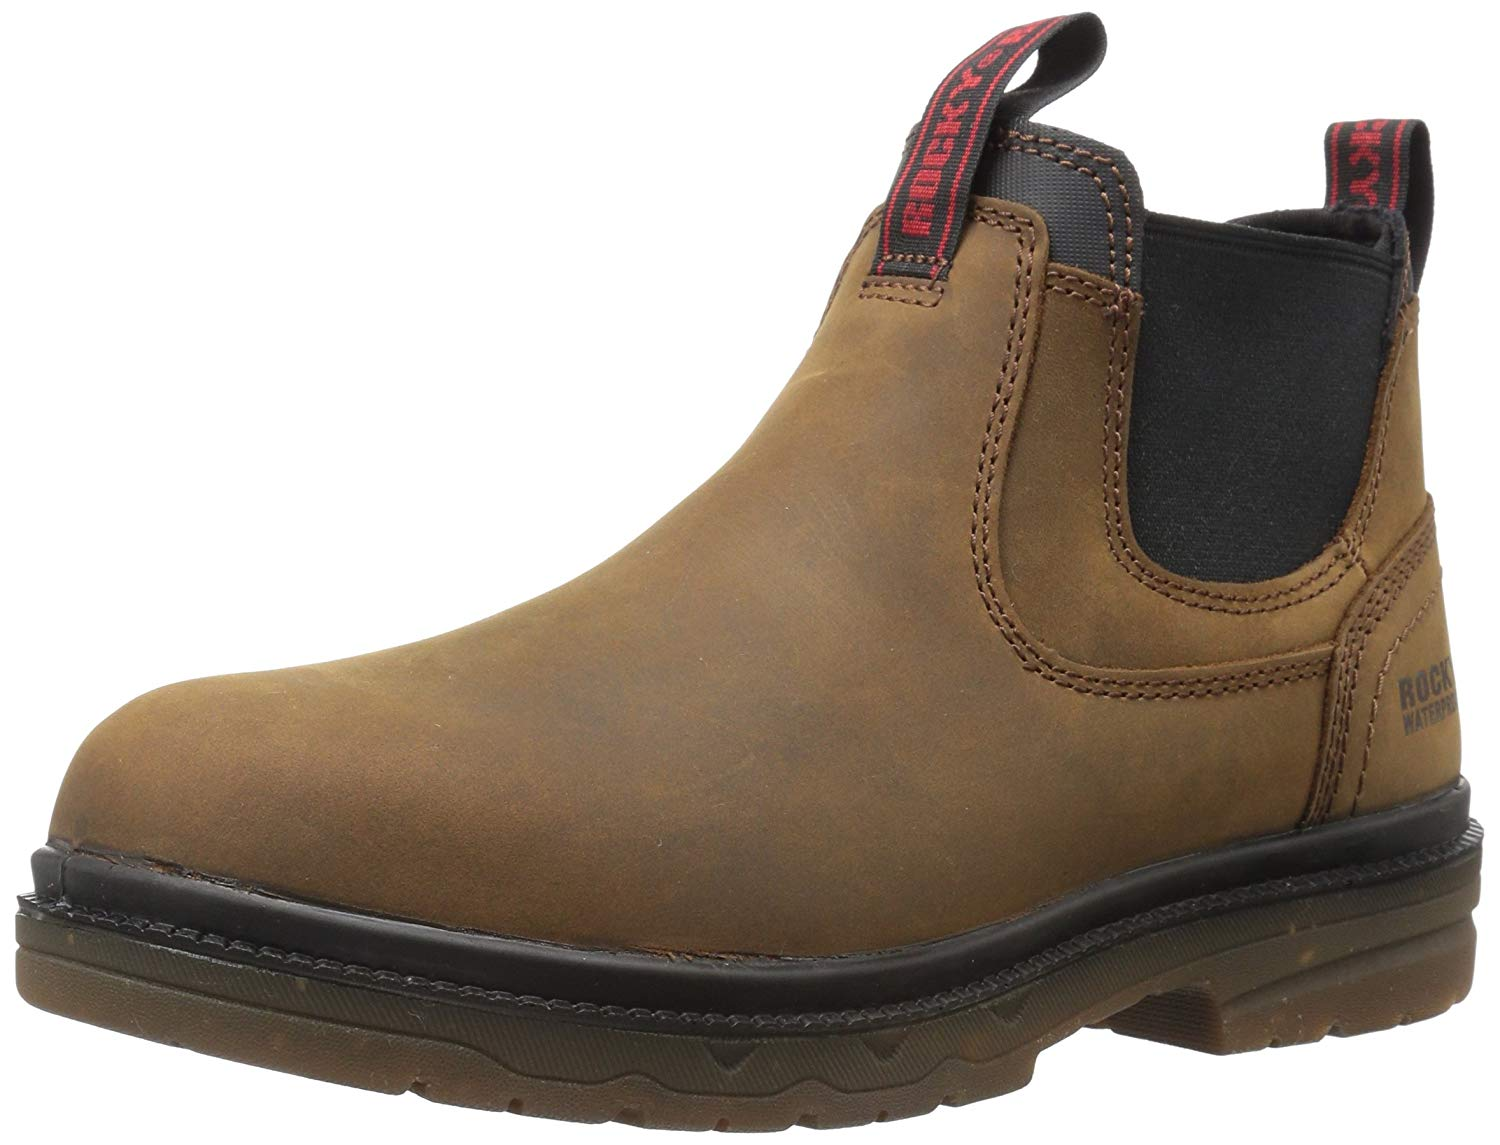 boots clipart construction boot #34055983